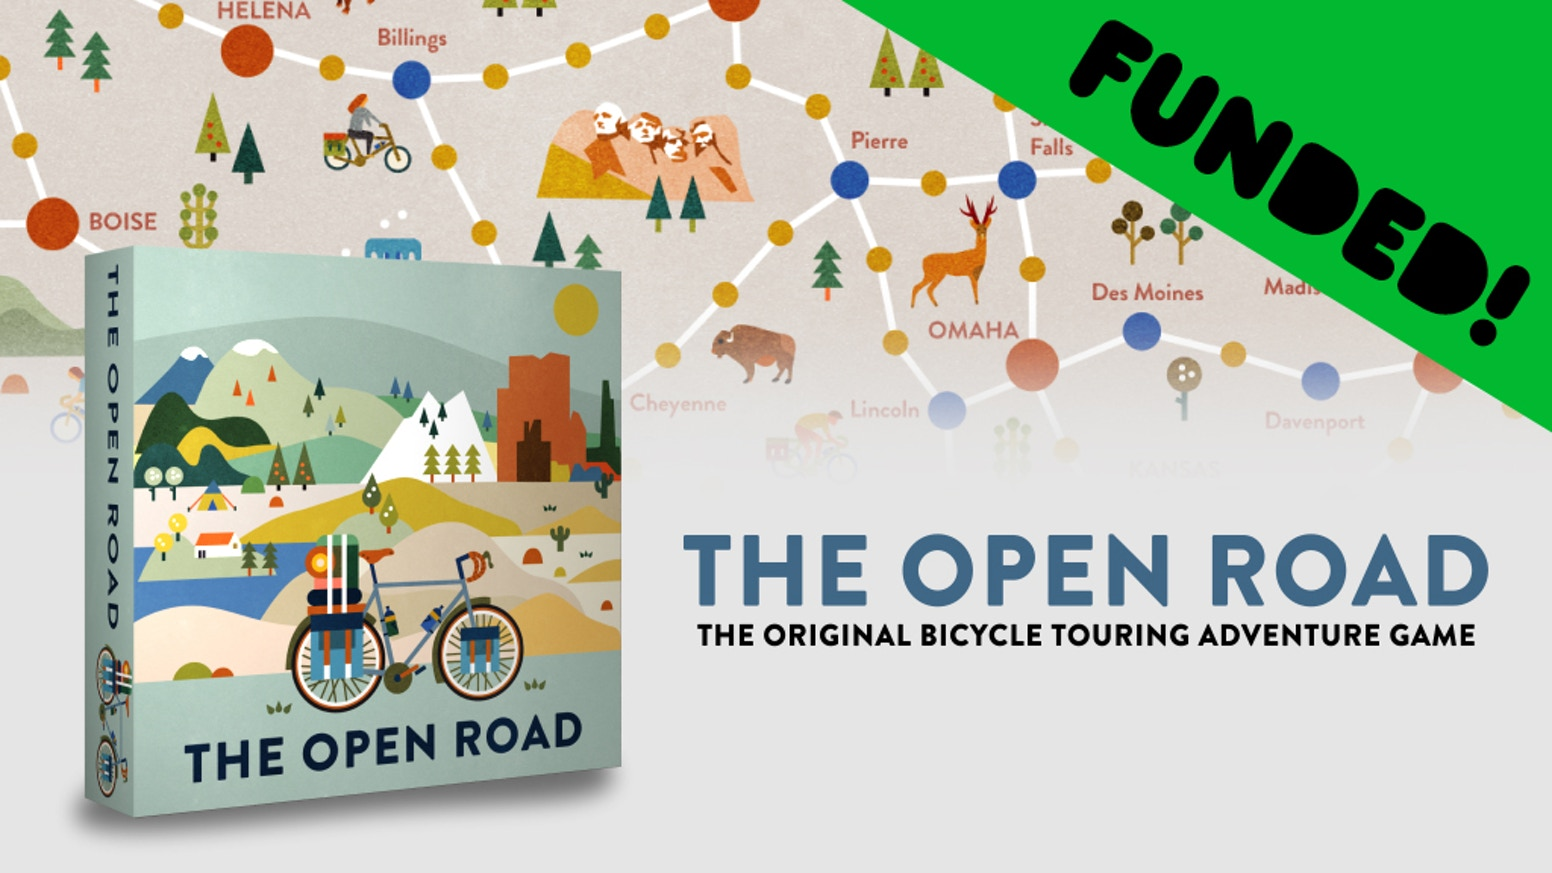 The Original Bicycle Touring Board Game. Pack your bags, hop in the saddle, and enjoy the freedom and adventure of The Open Road. You can now order at our website. Click below!